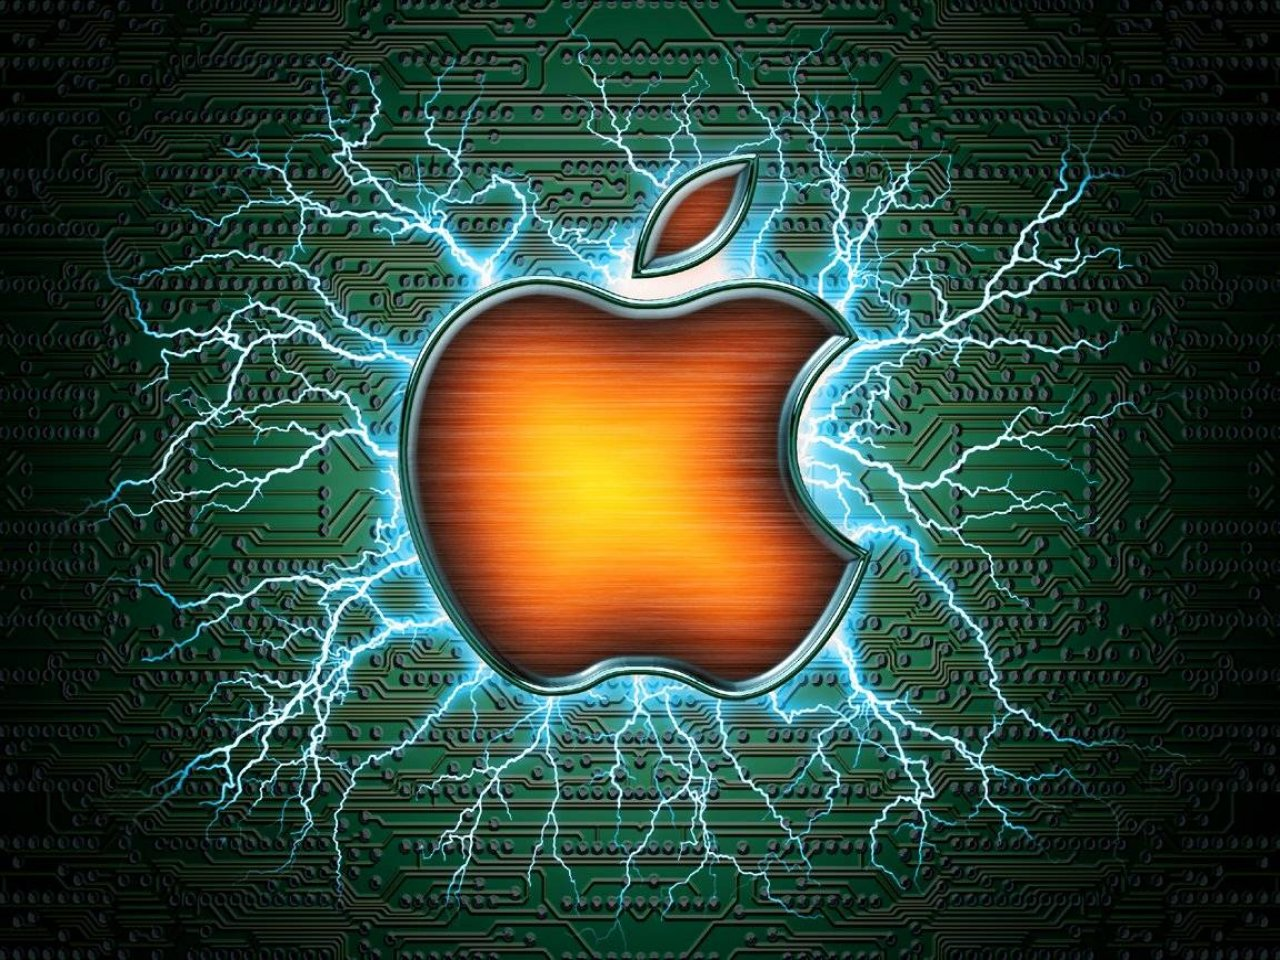 Best Wallpapers for iPad Download 1280x960